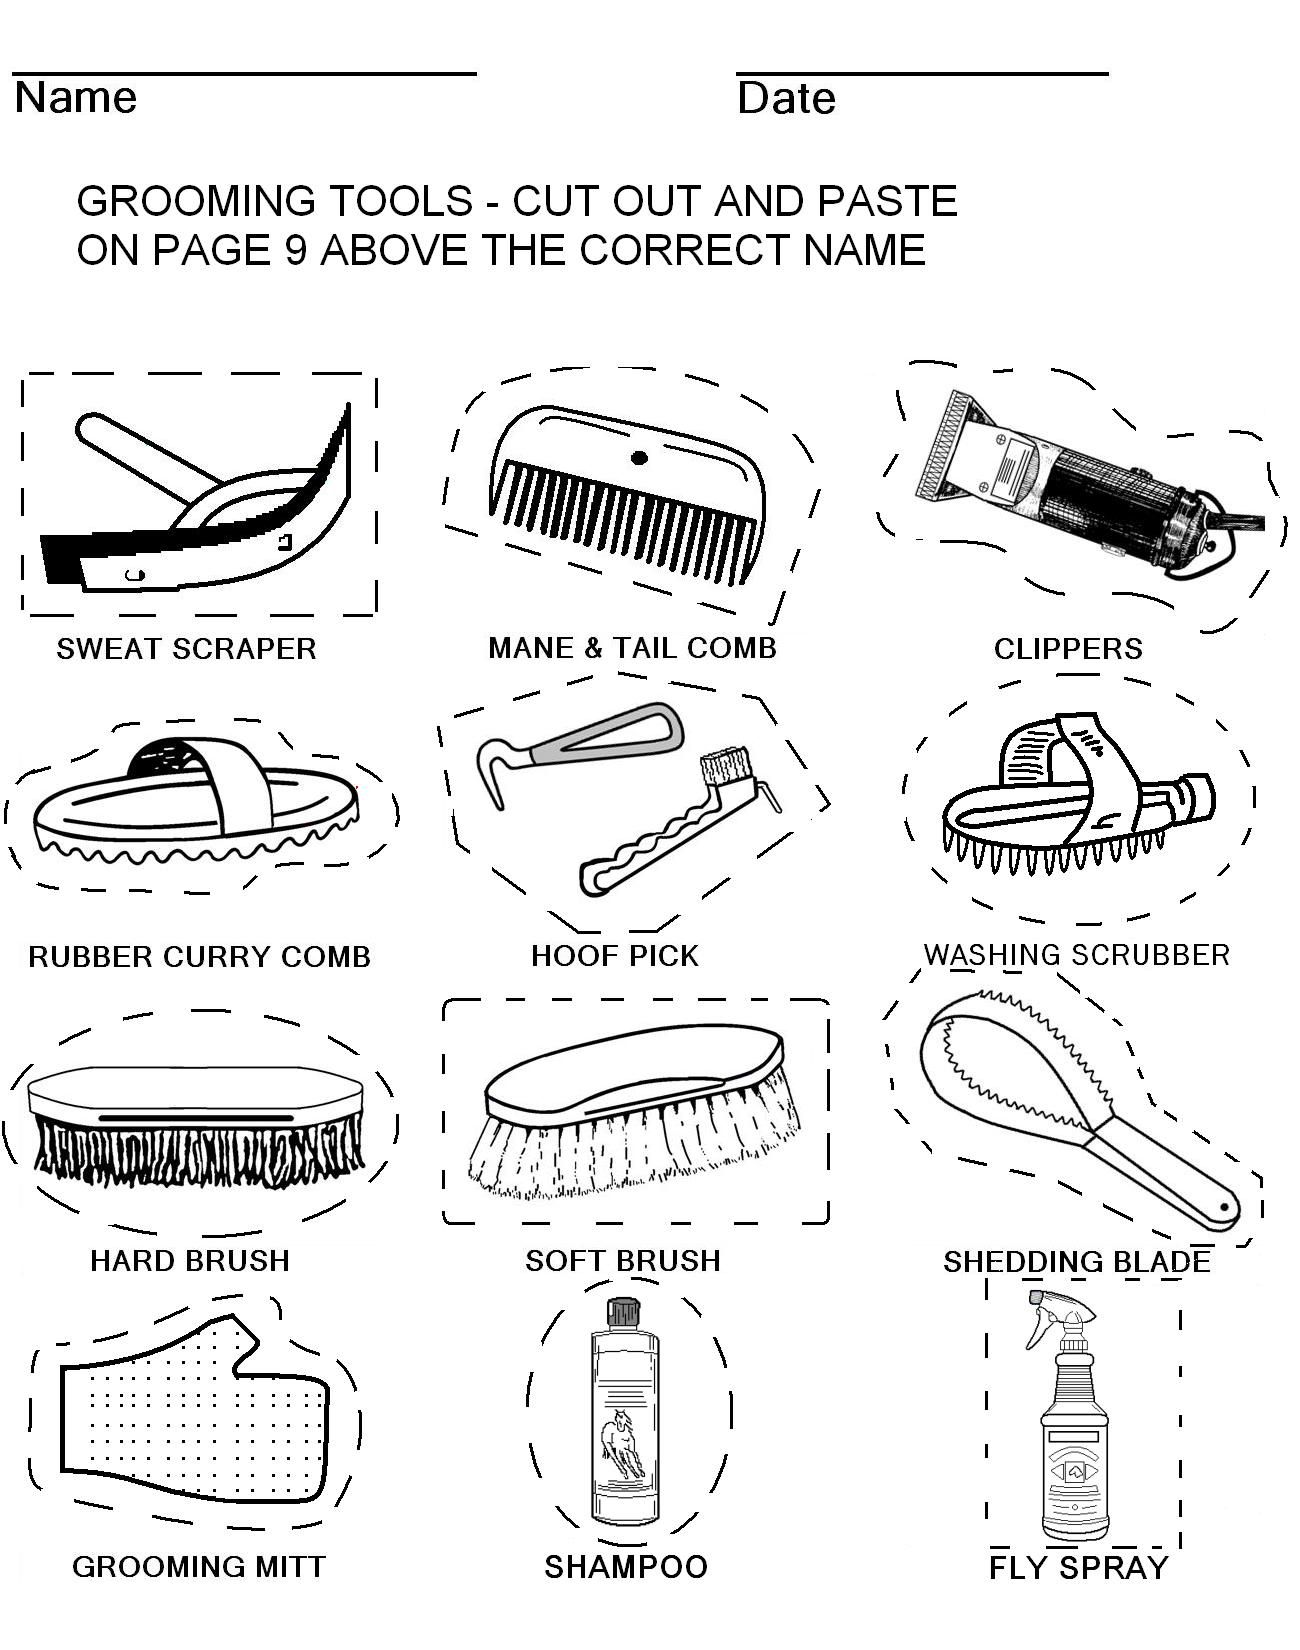 grooming tools cut amp paste page 8 the rest of the pages [ 1300 x 1650 Pixel ]